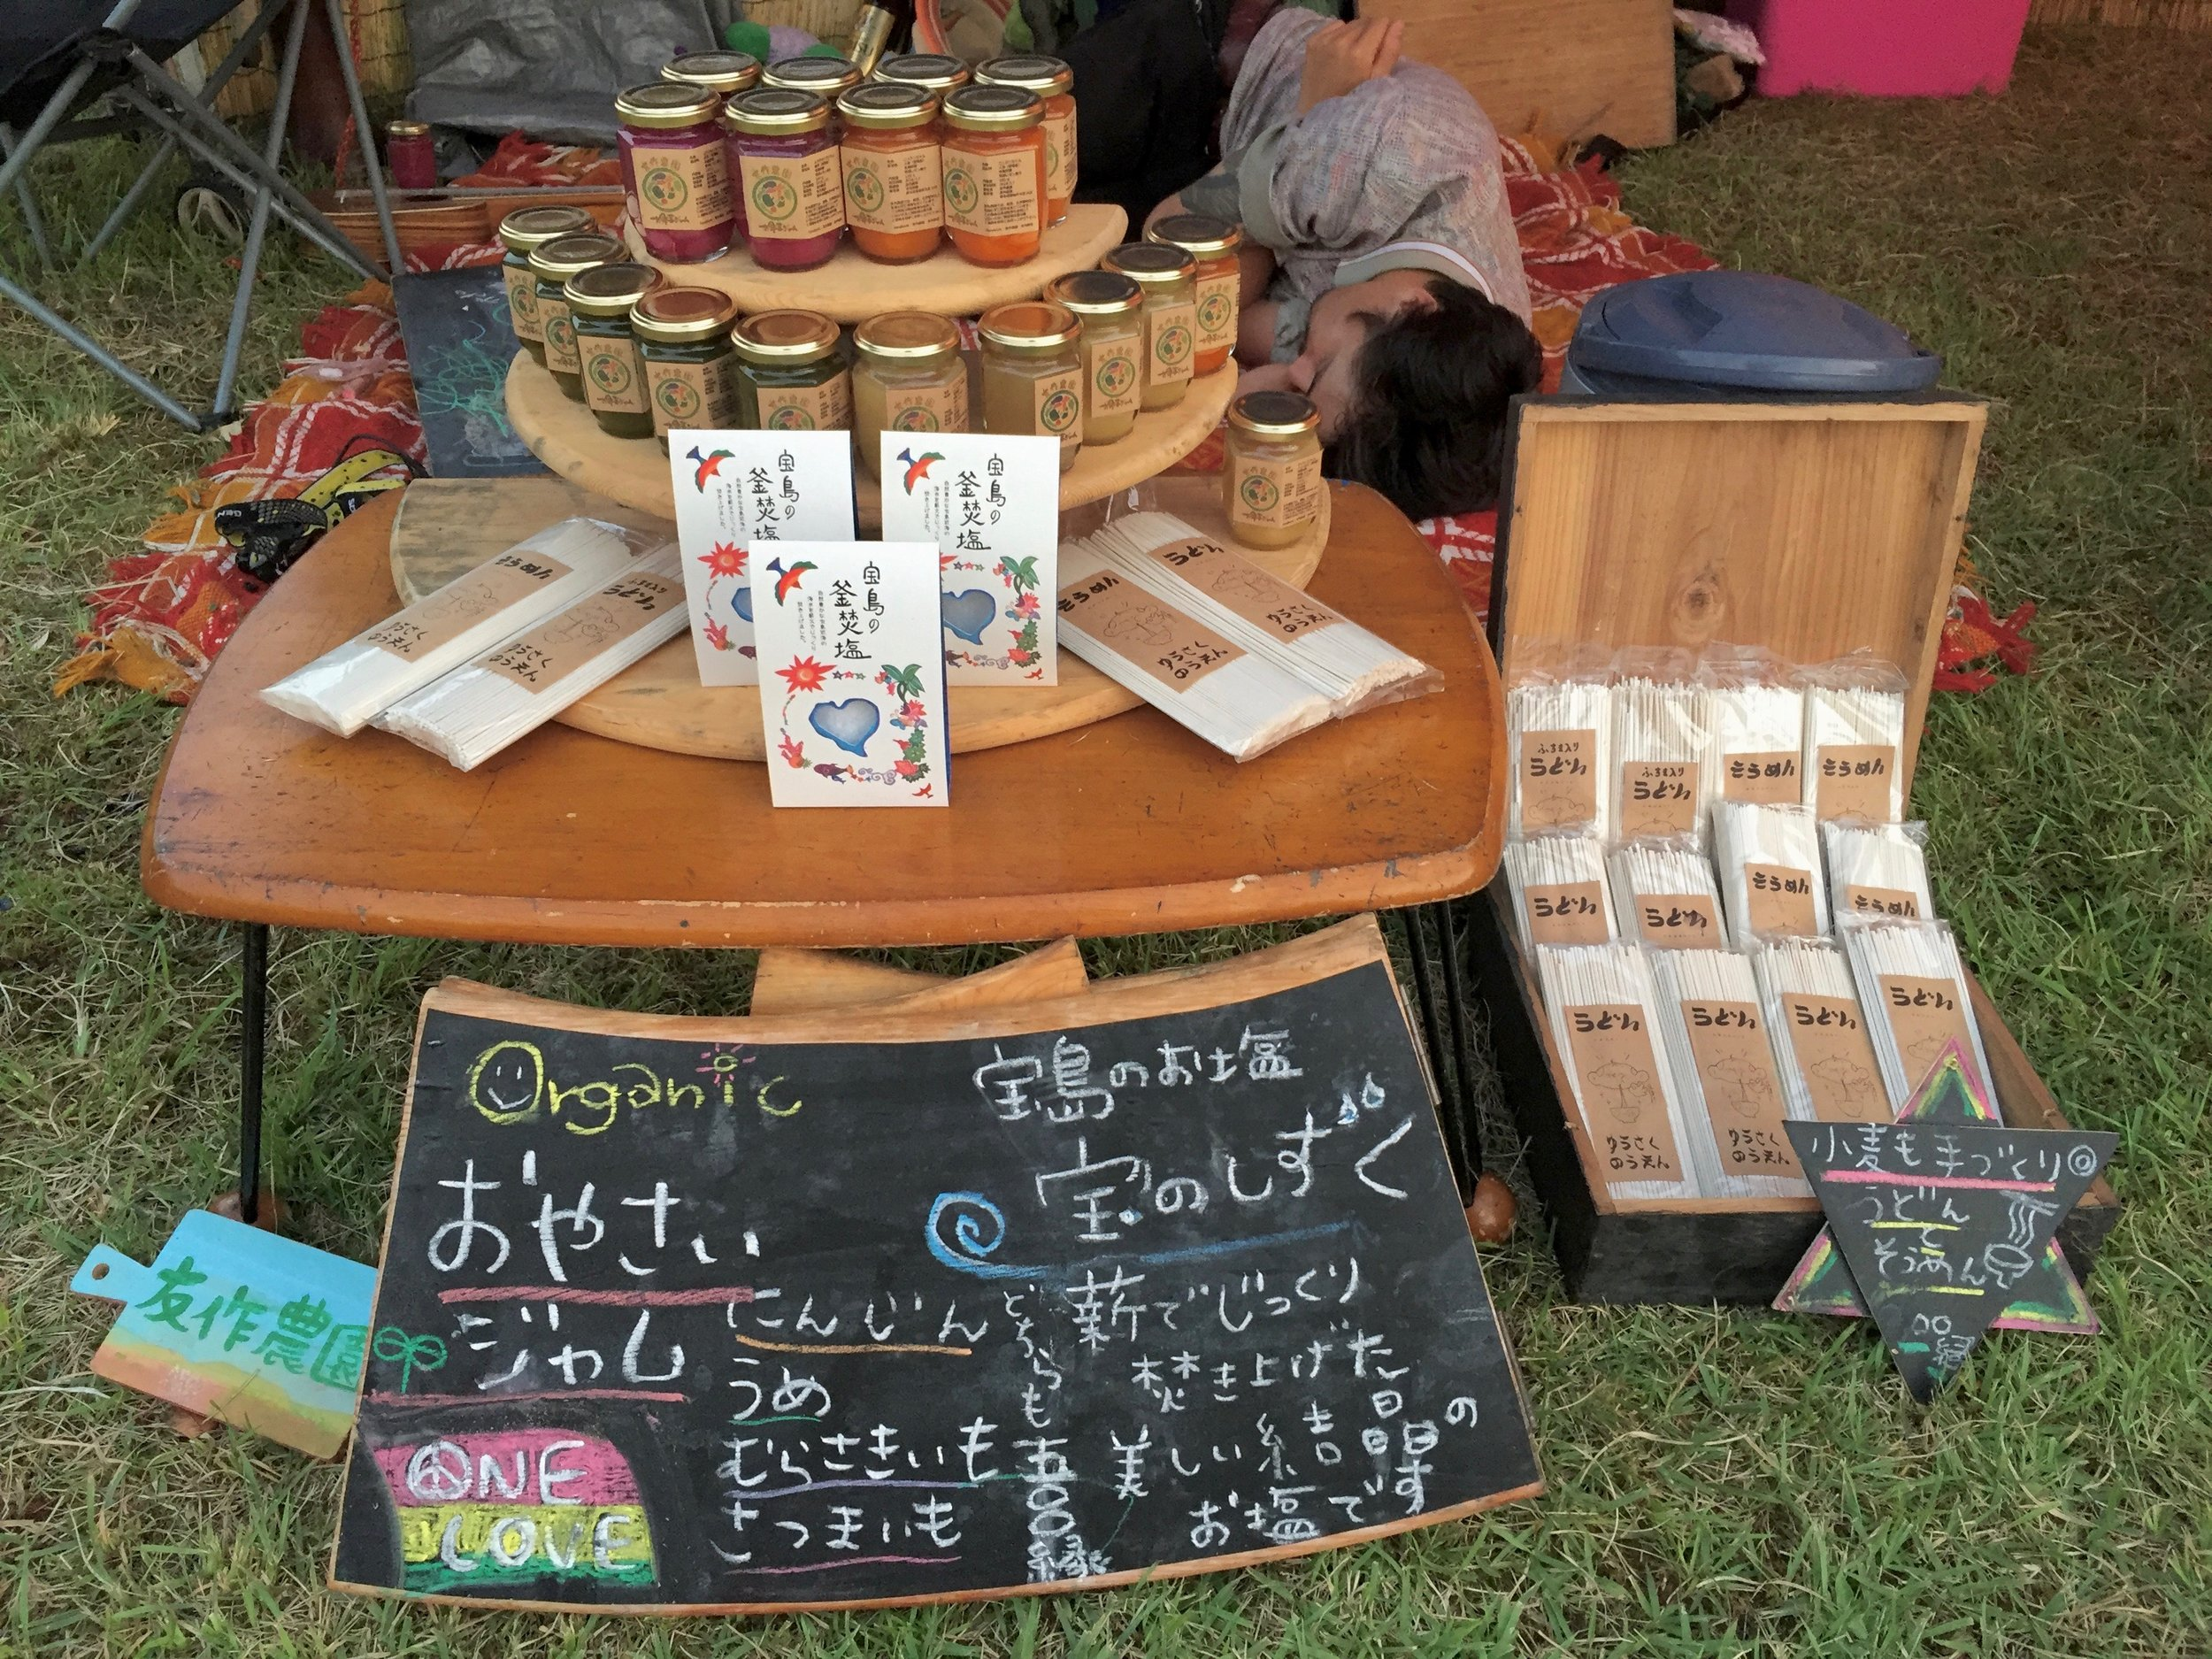 Selling organic jam at the festival